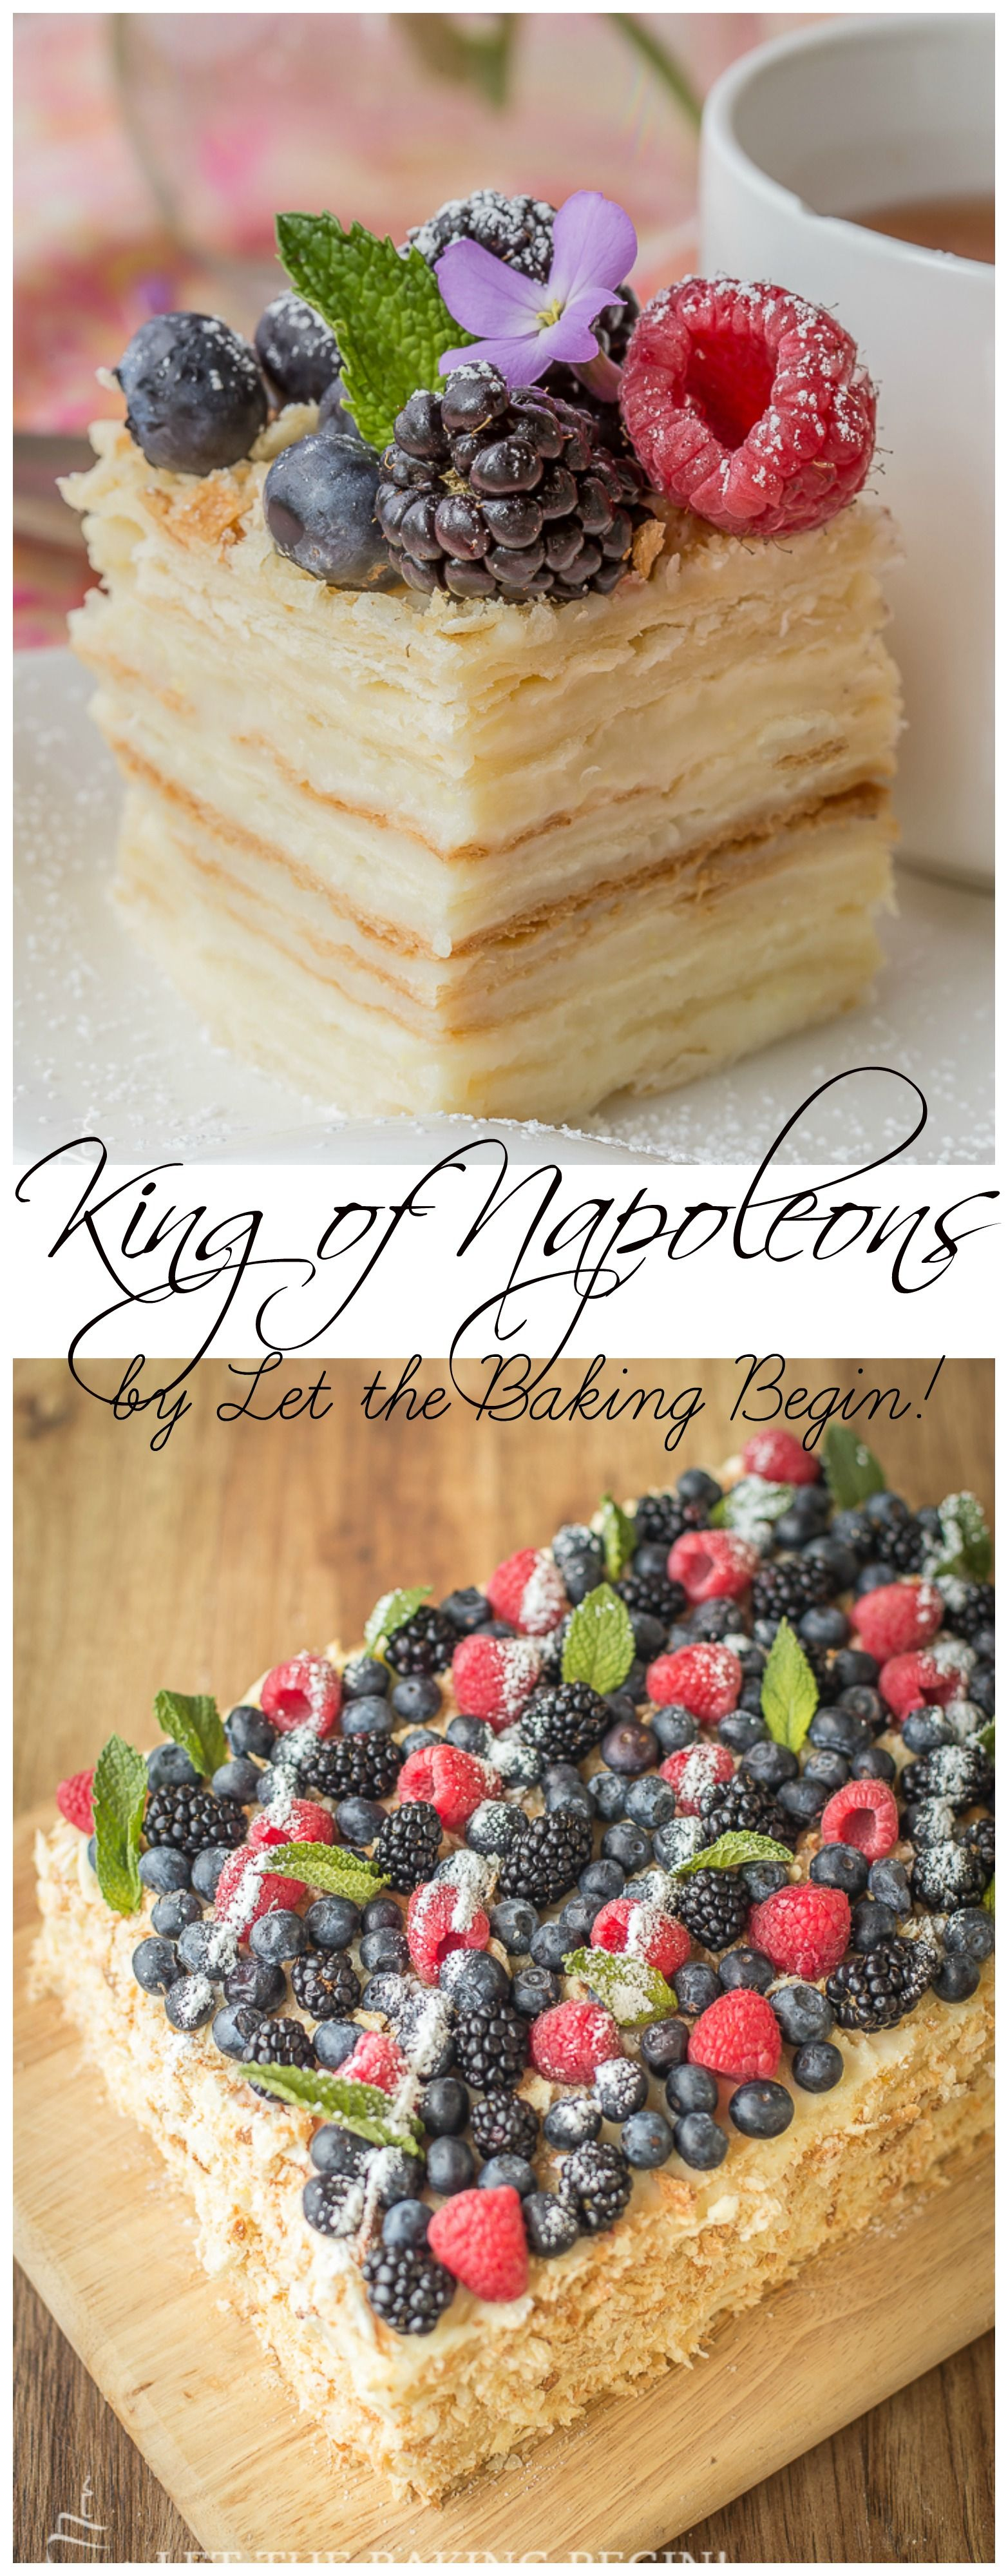 Delicious puff pastry cake, layered with custard & topped with berries. Plus a tip on how to speed up the baking process. by LetTheBakingBeginBlog.com #napoleonkuchenrussisch